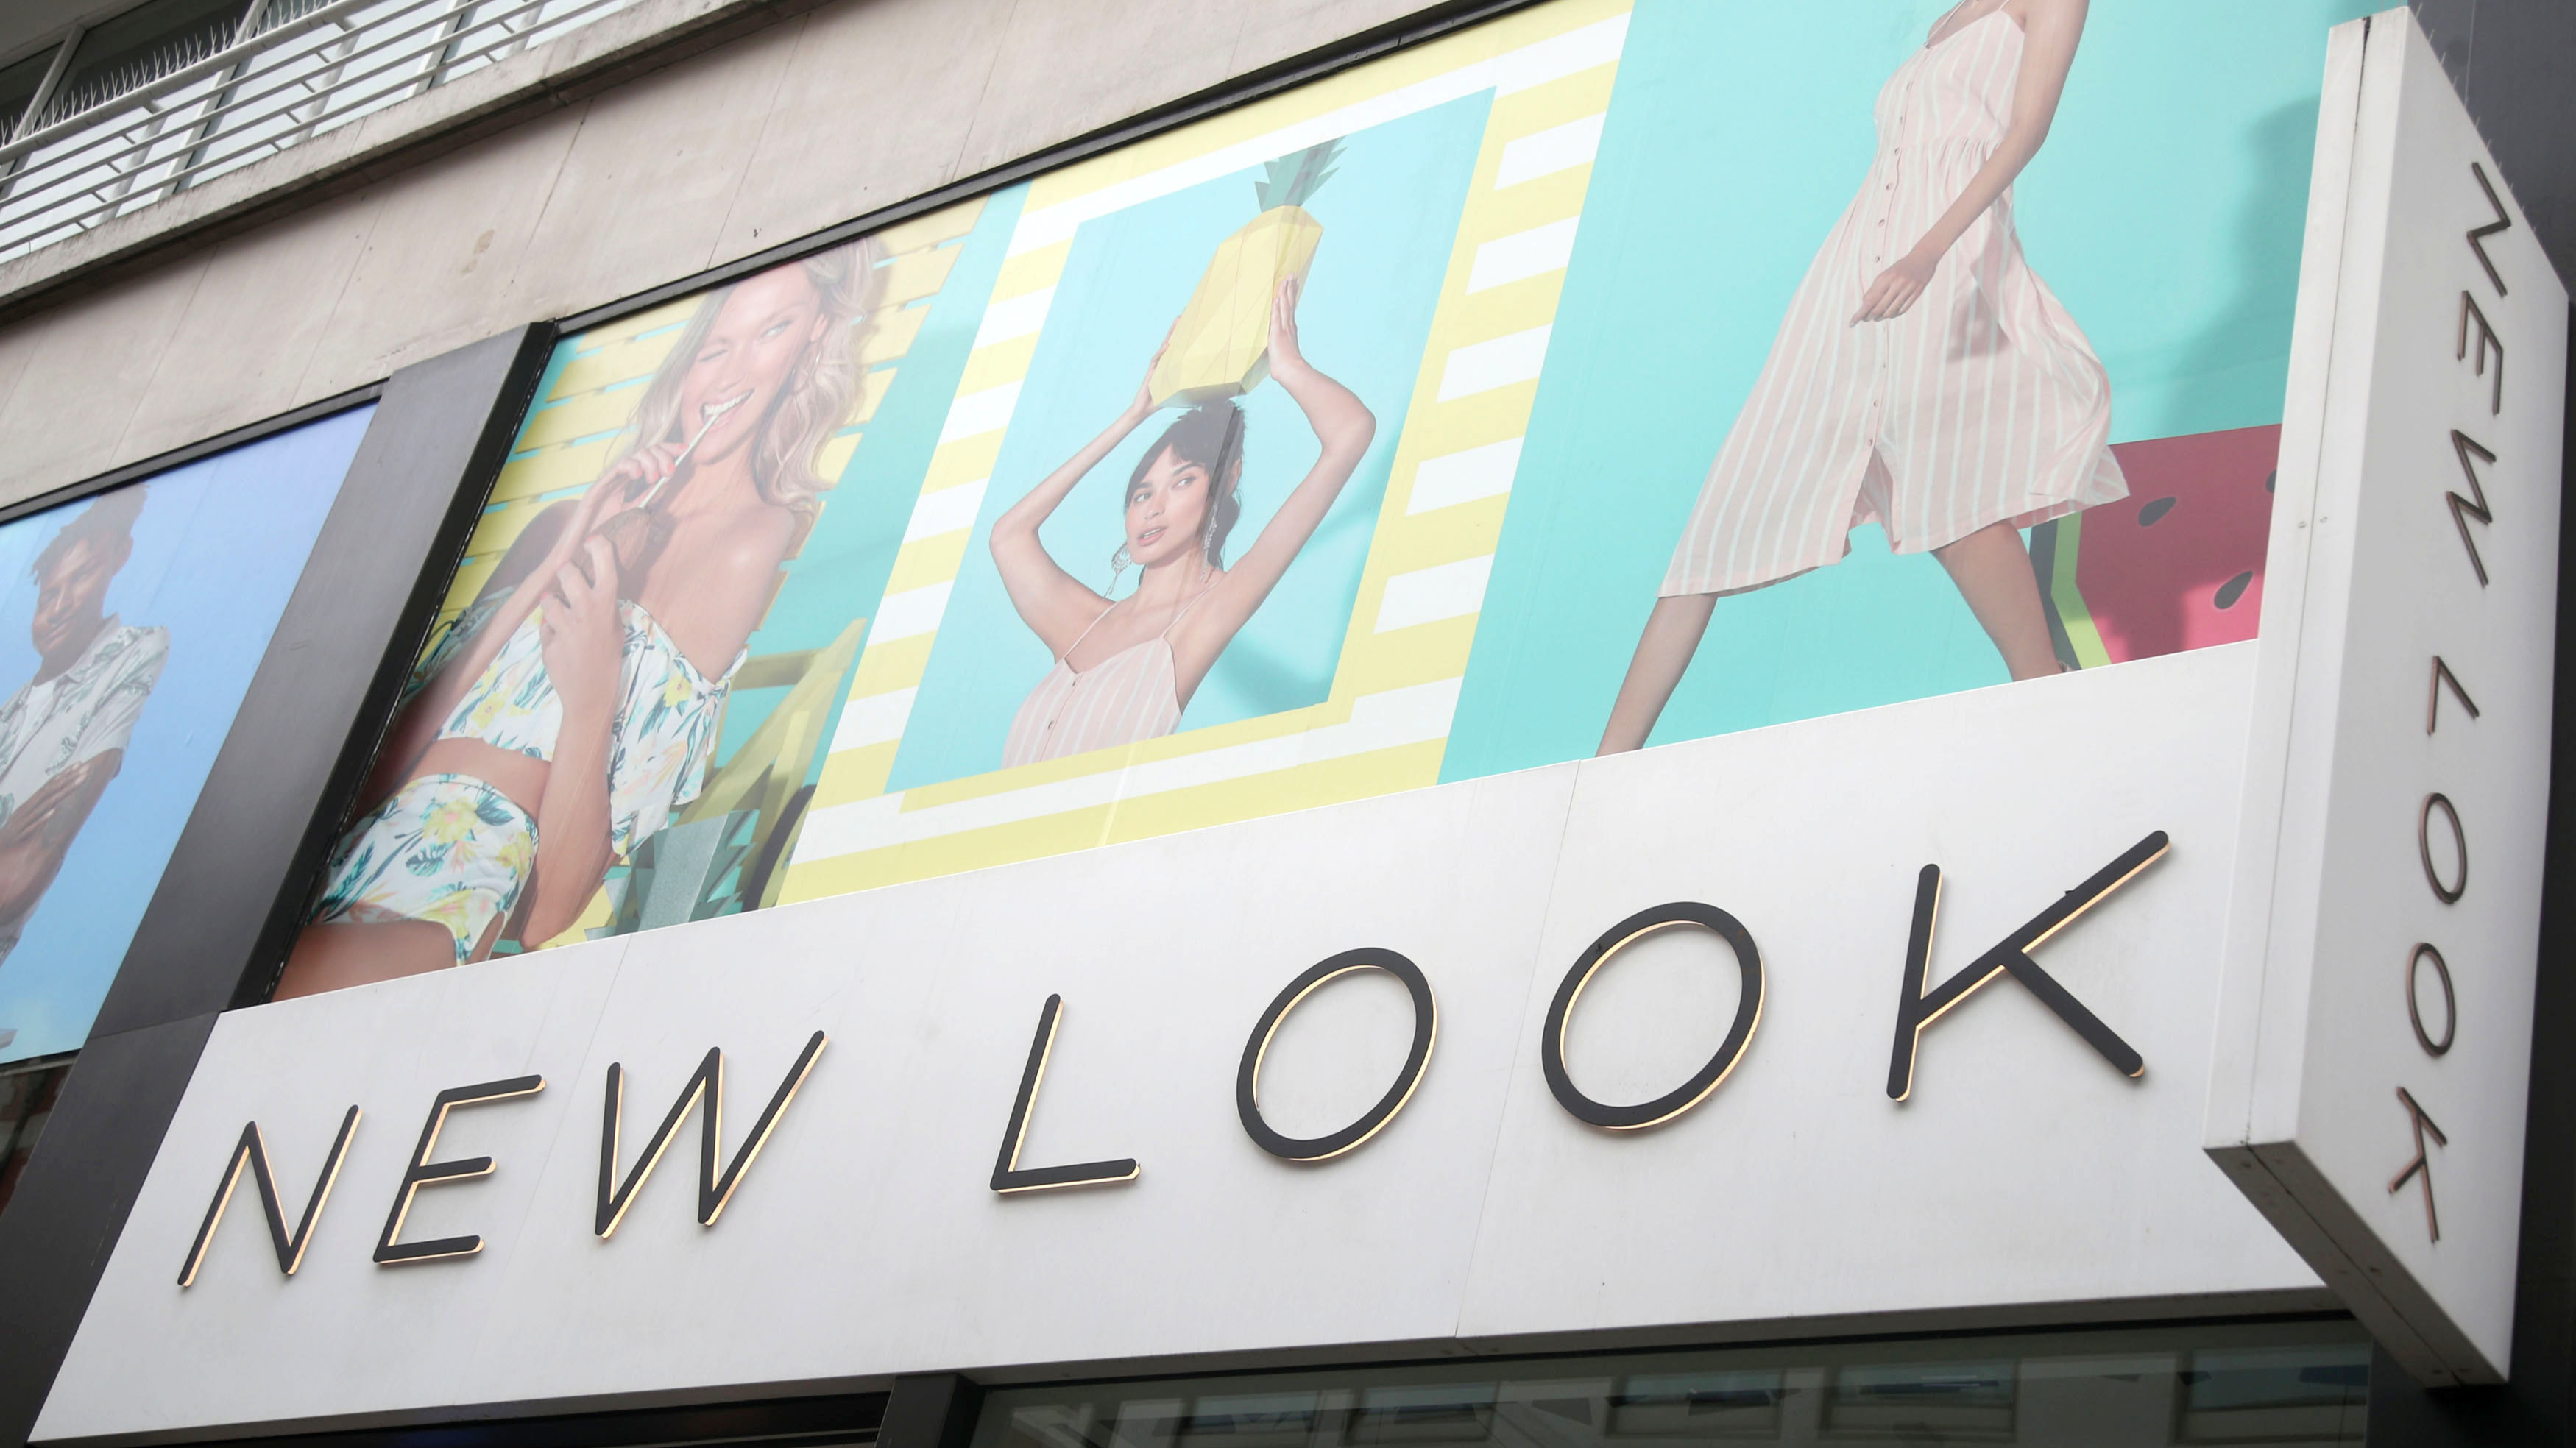 New Look Could Shut Up To 100 Of Its Stores On The High Street